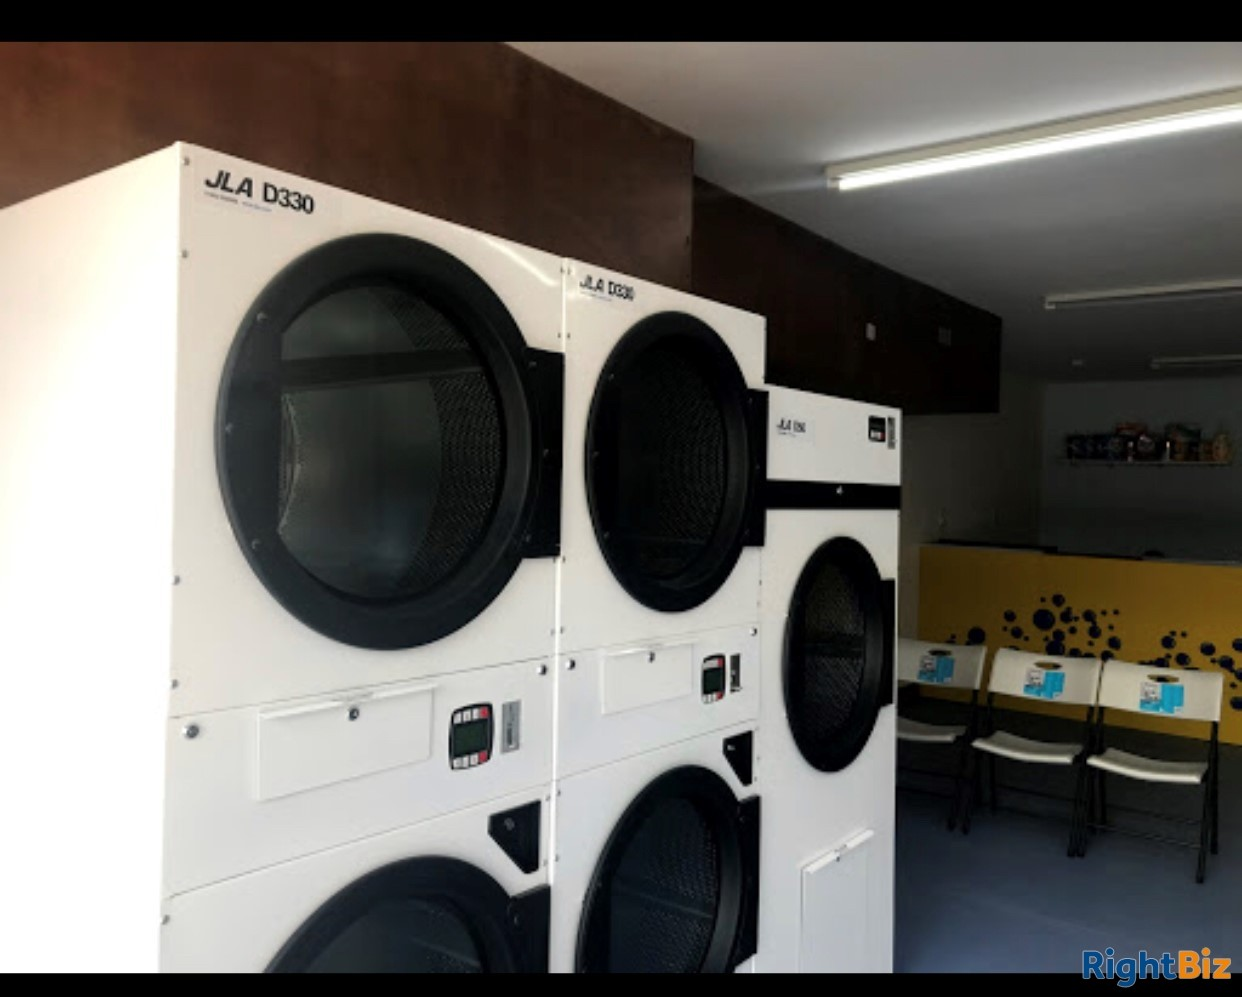 Laundrette for sale. Small business everything new. Prime location!! WF9 2AE. - Image 4